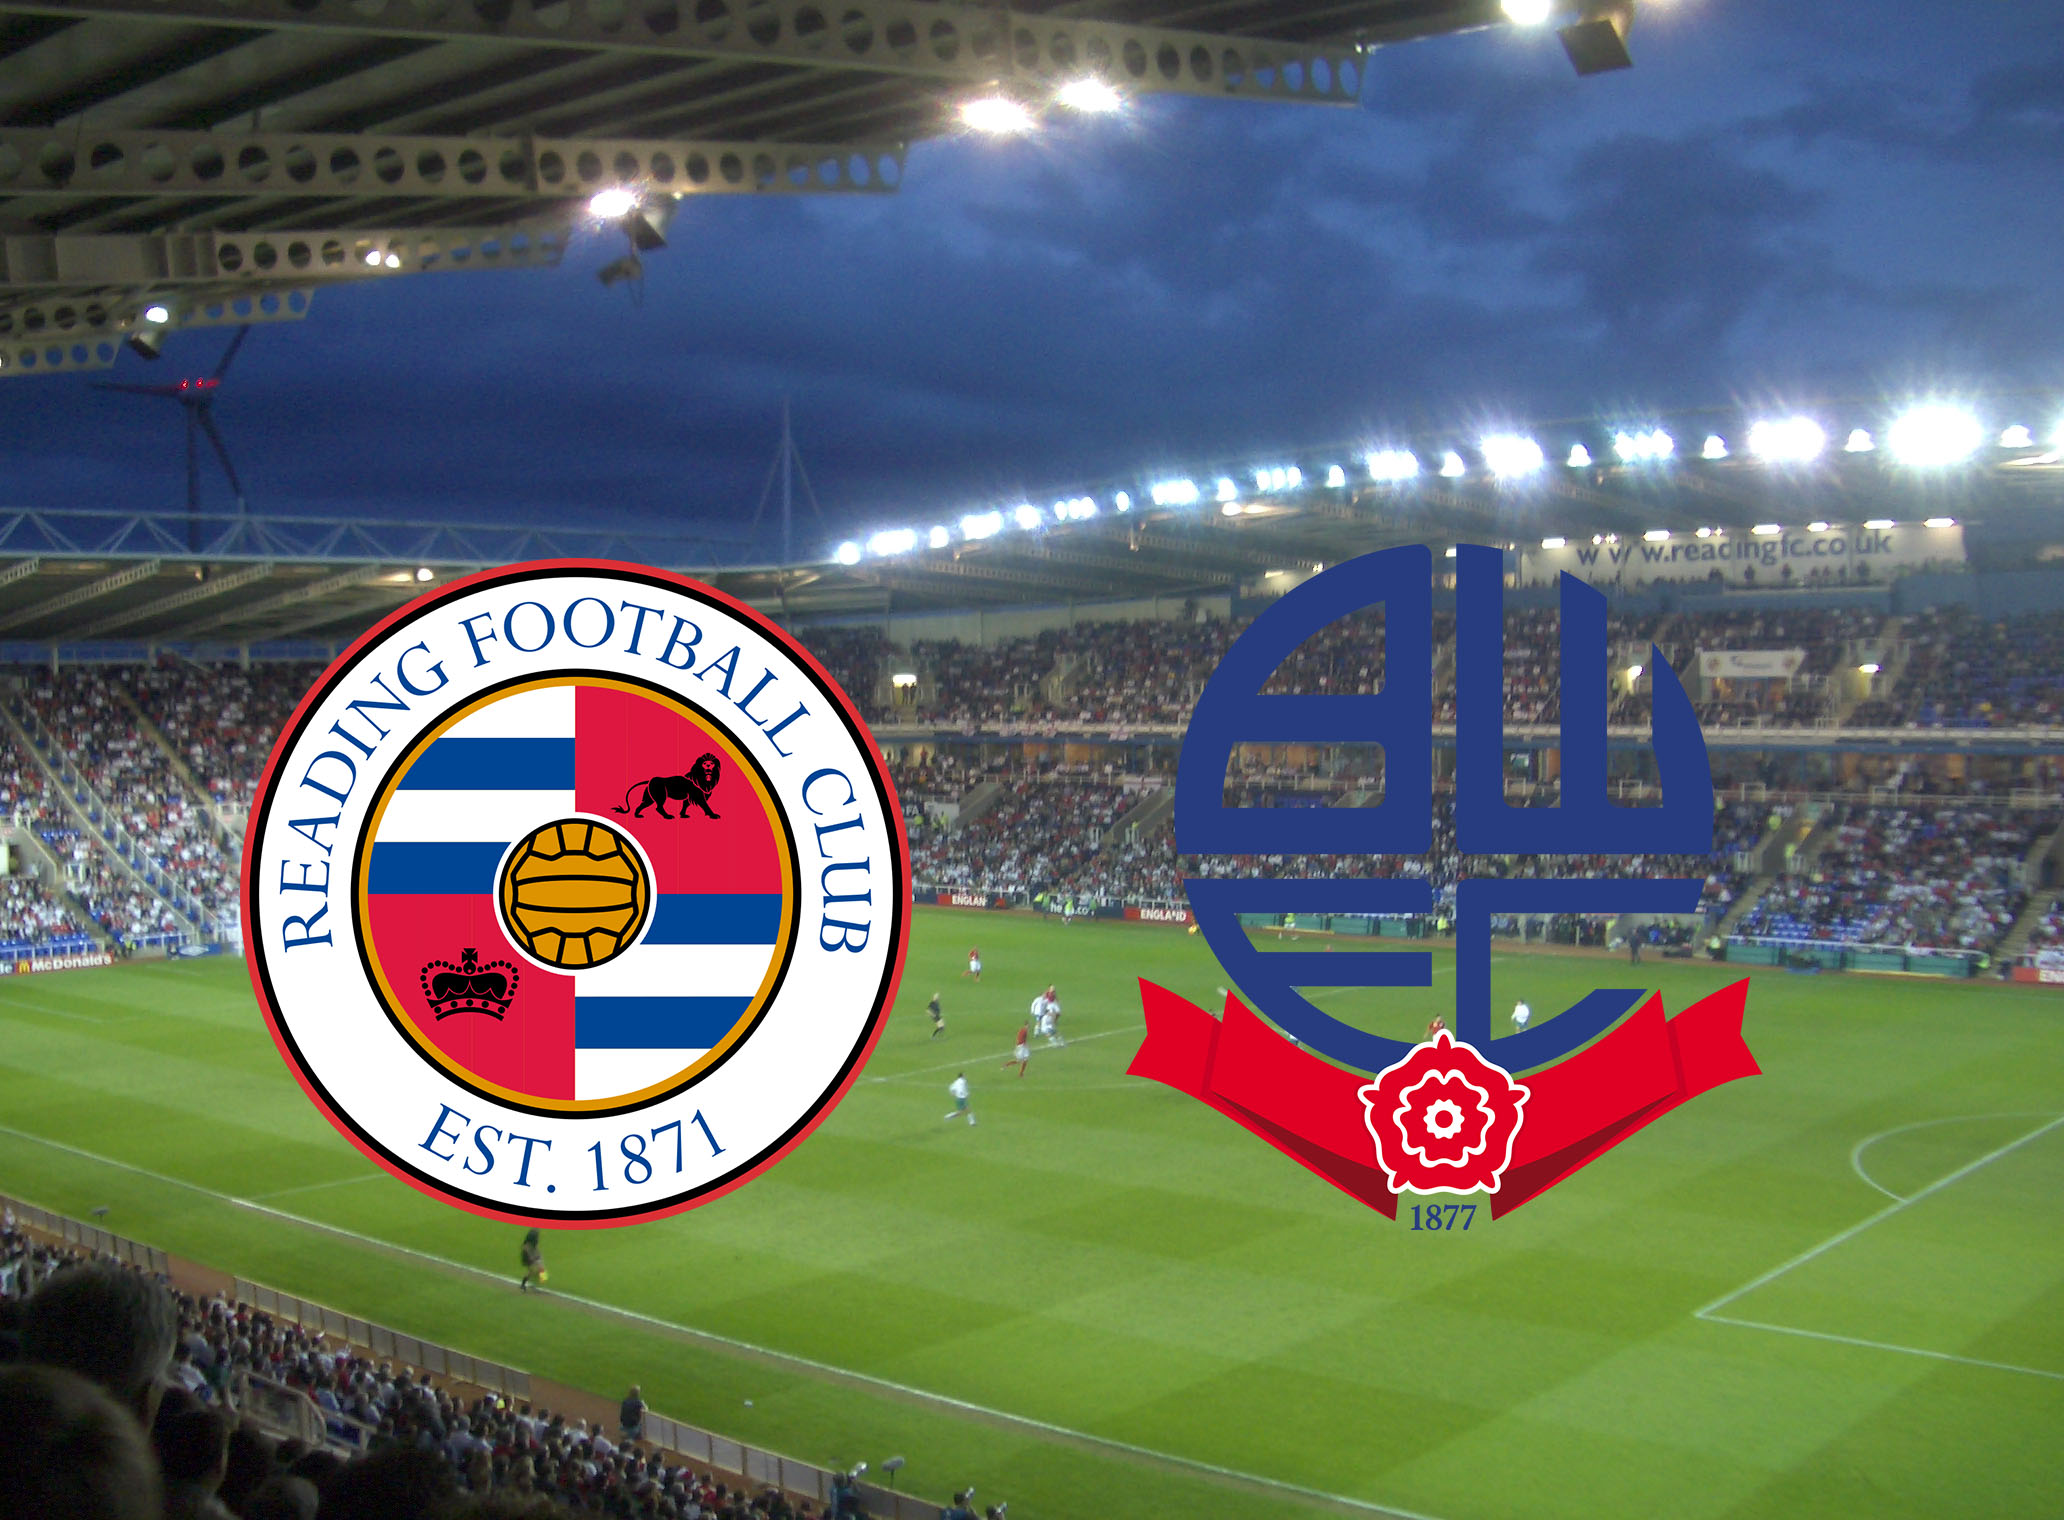 reading-vs-bolton-wanderers-tip-bong-da-7-3-2018 1